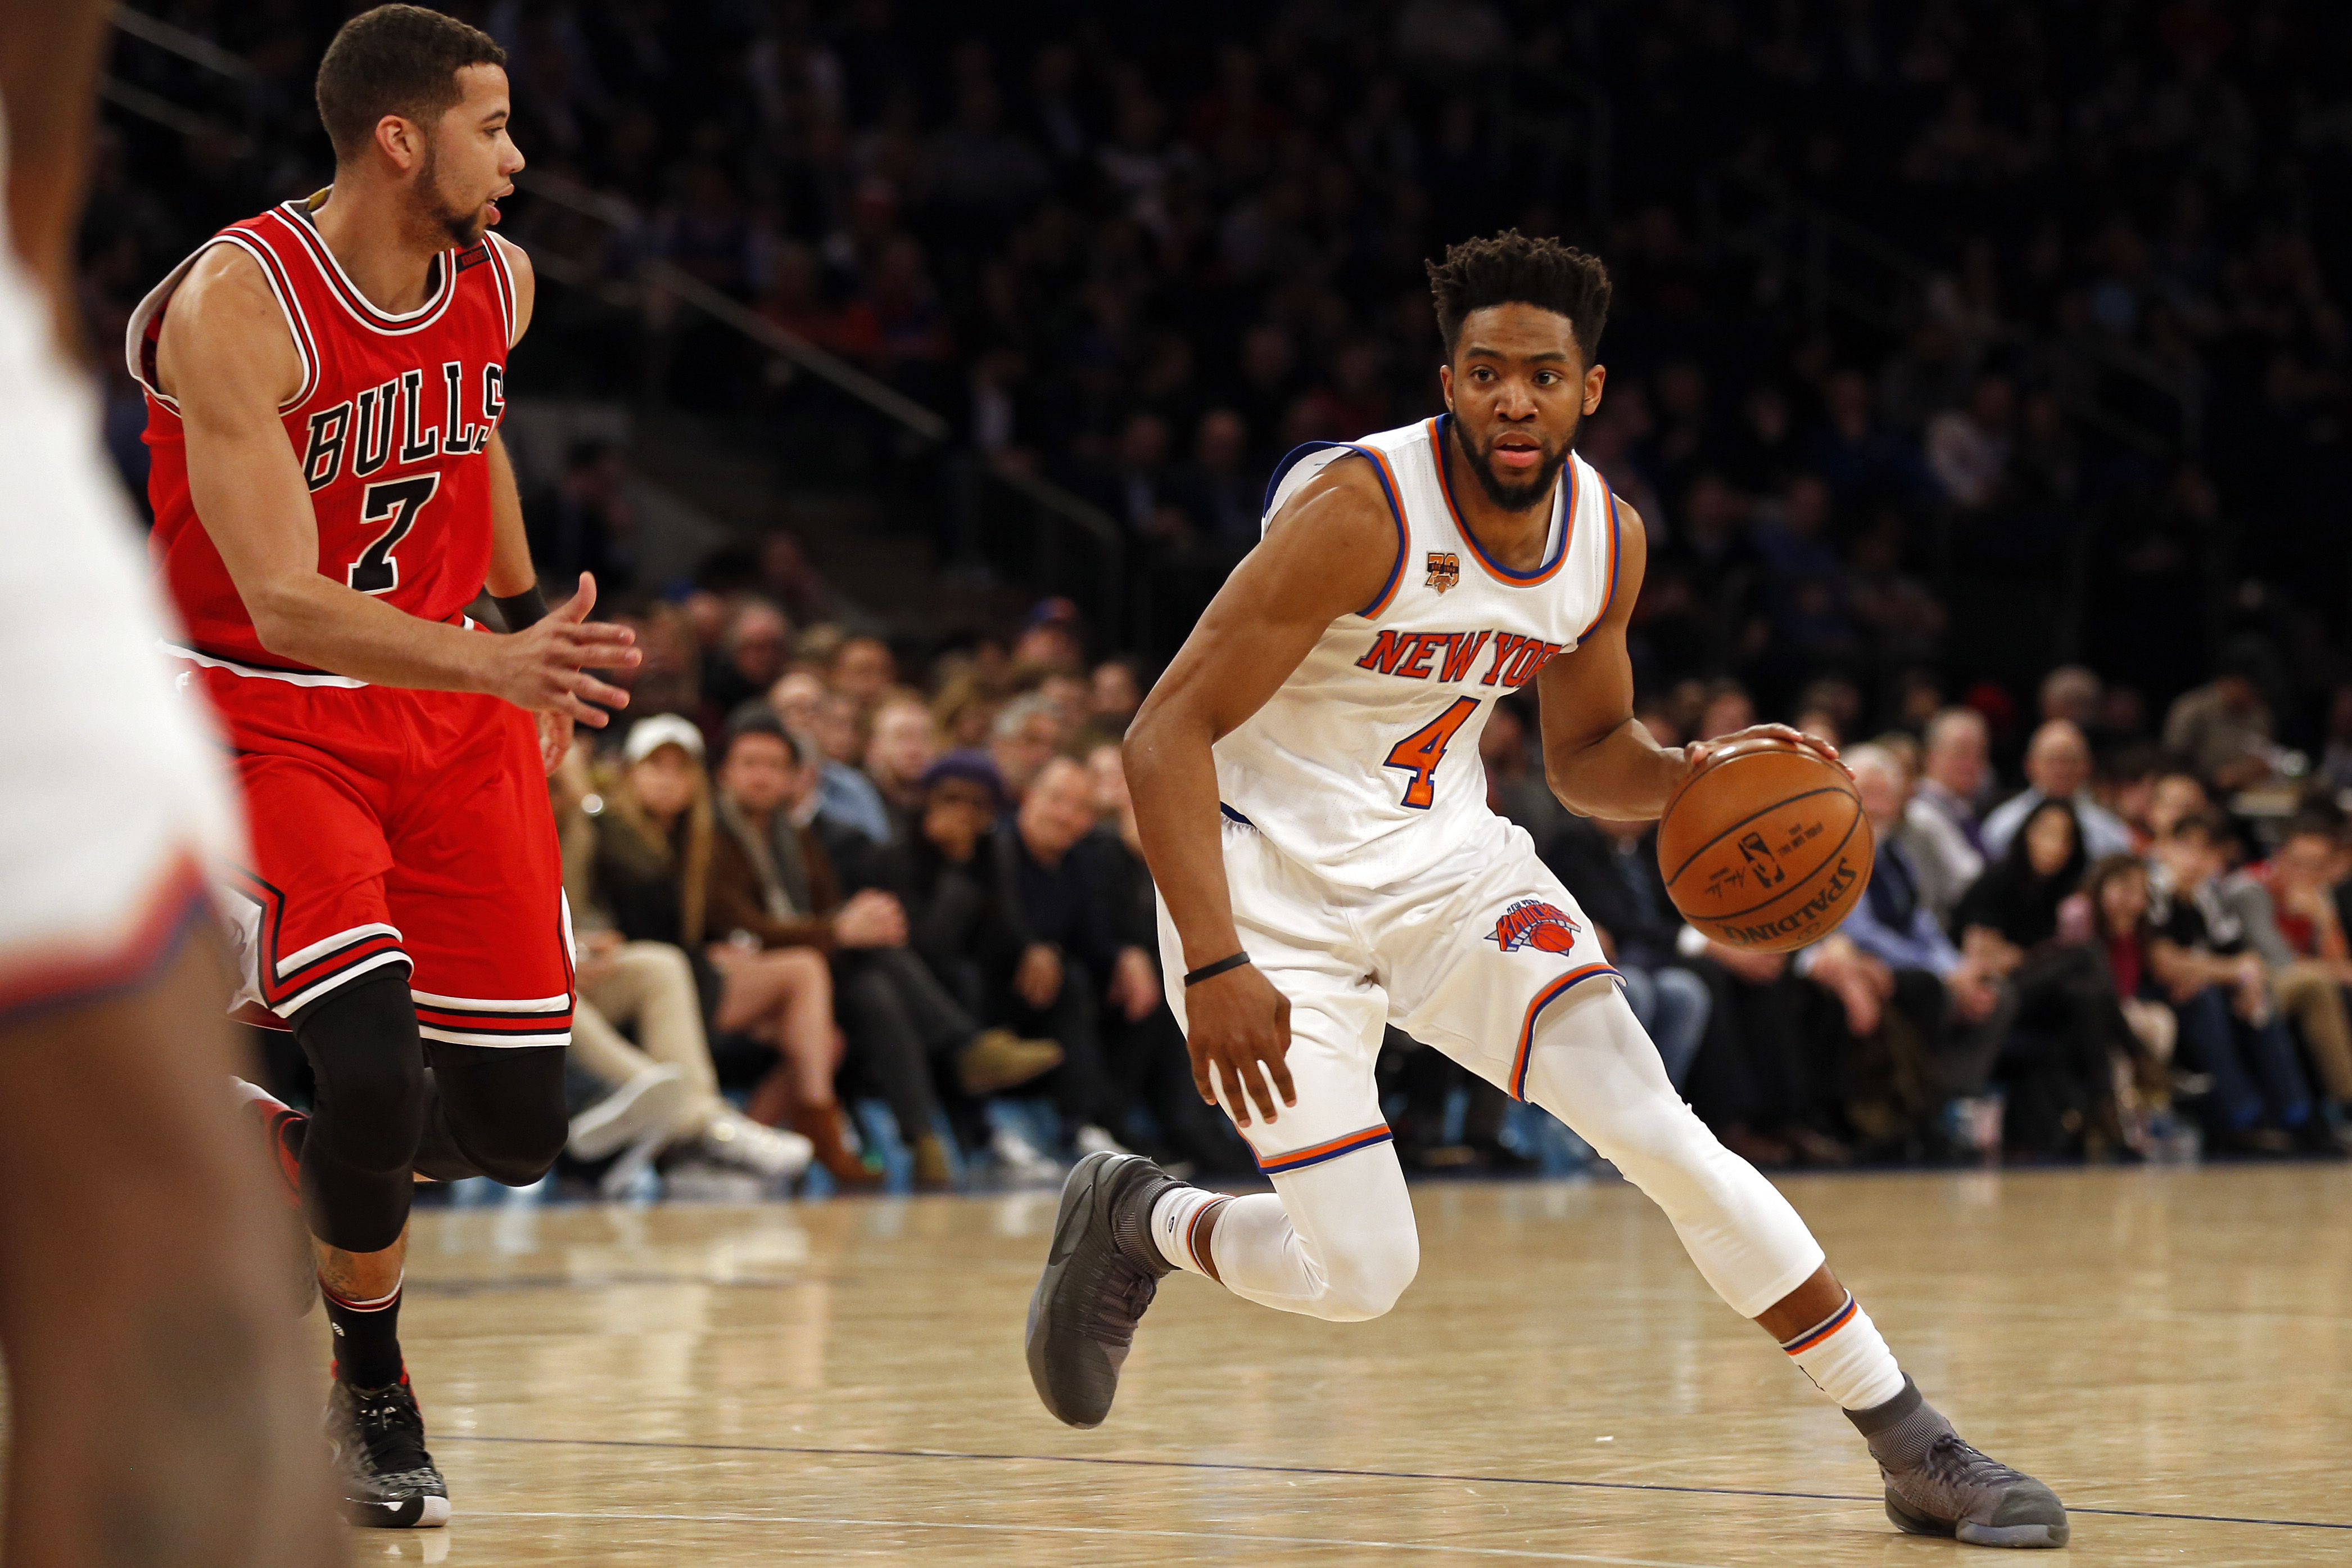 9993226-nba-chicago-bulls-at-new-york-knicks